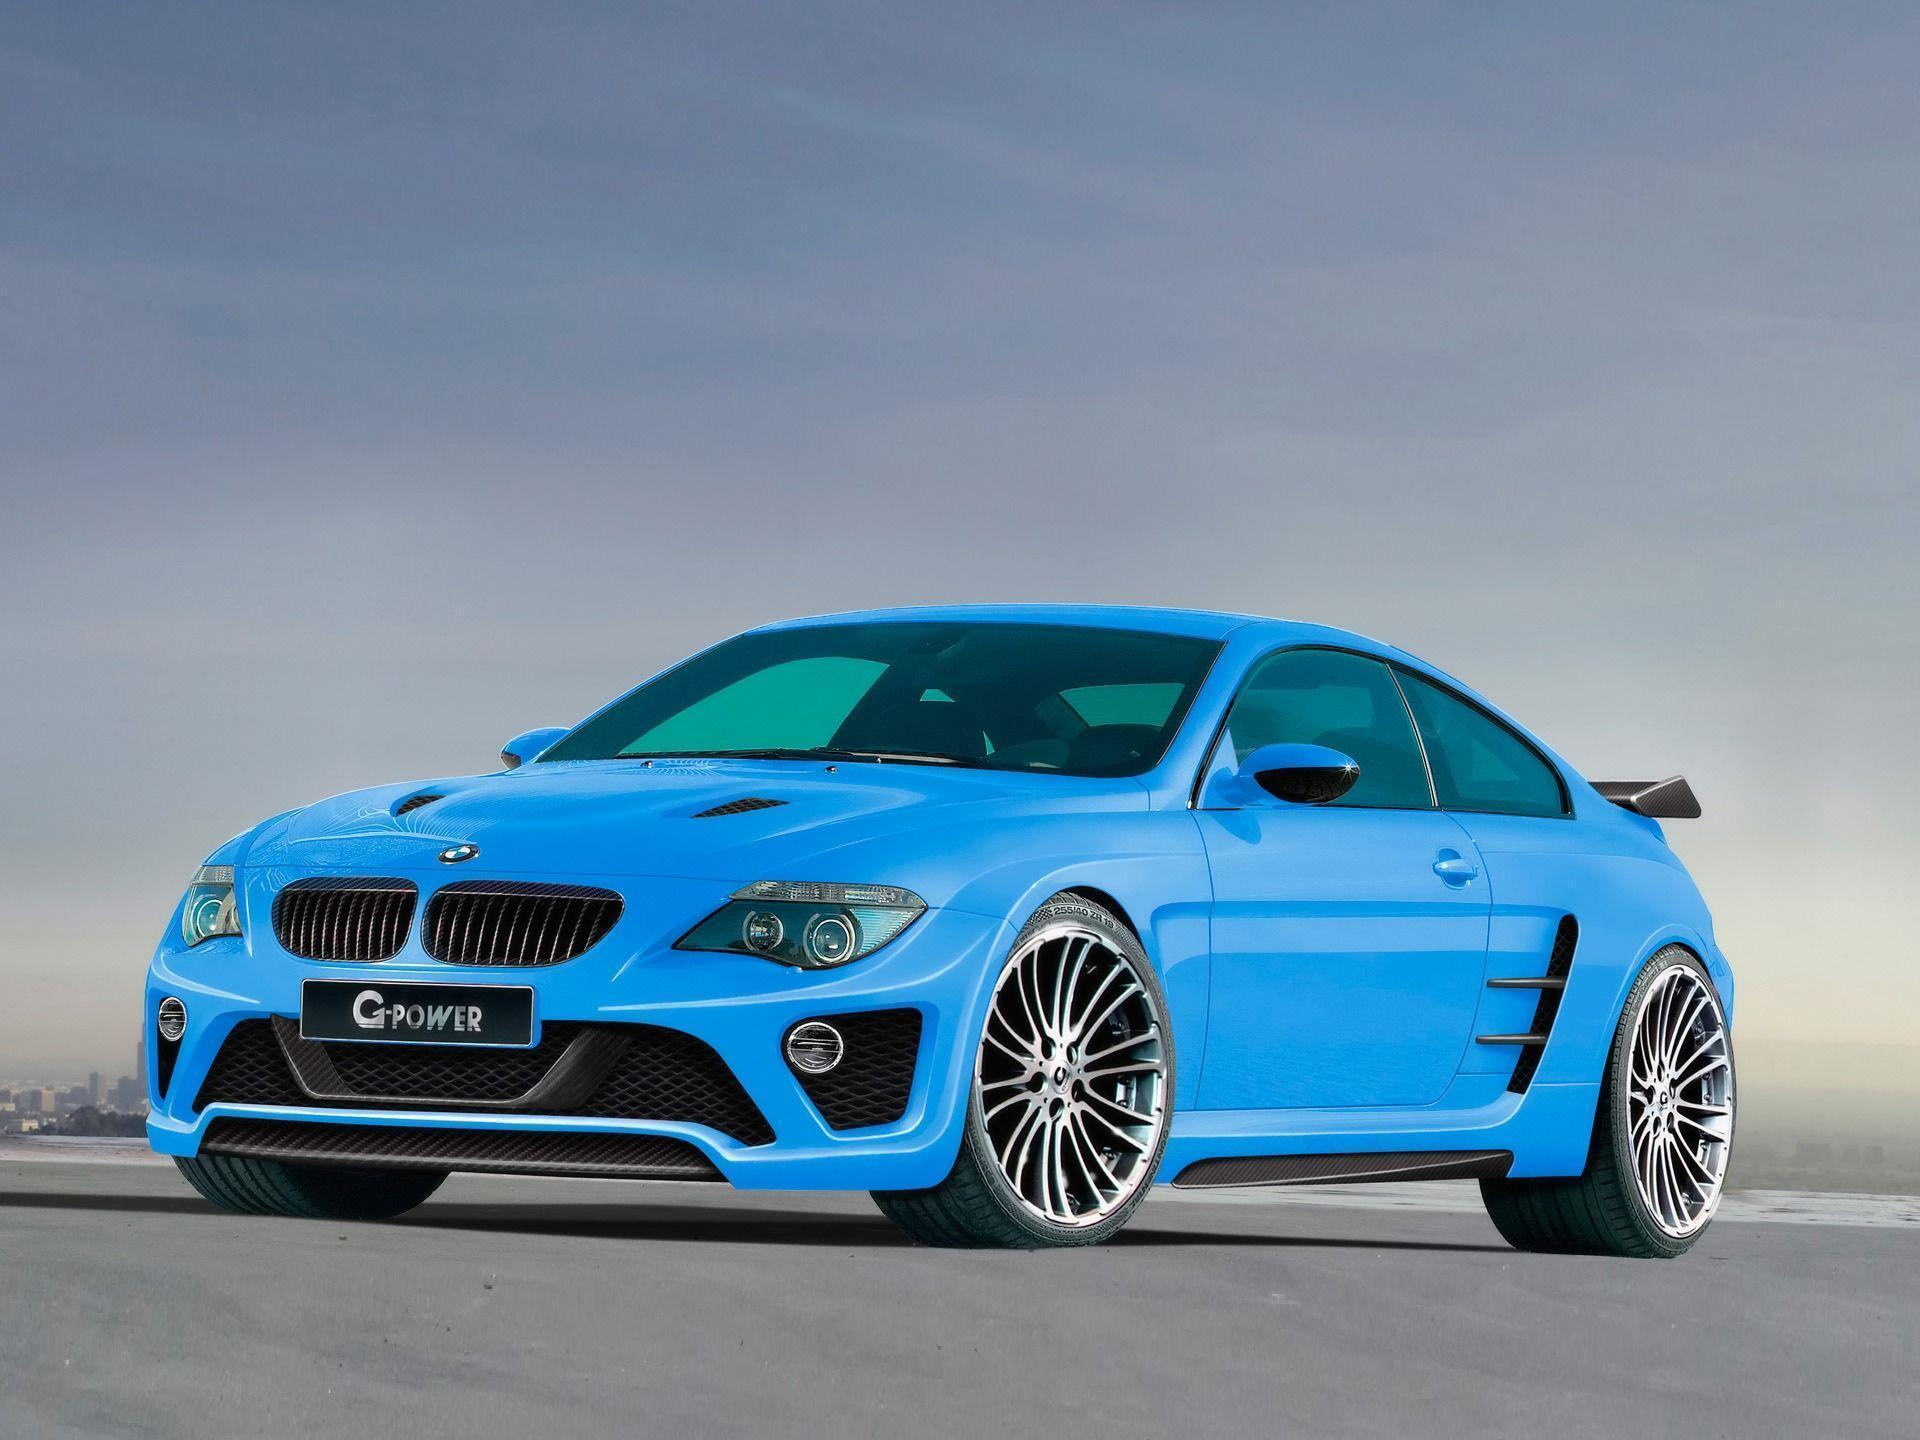 Bmw Cool Cars Wallpapers Top Free Bmw Cool Cars Backgrounds Wallpaperaccess